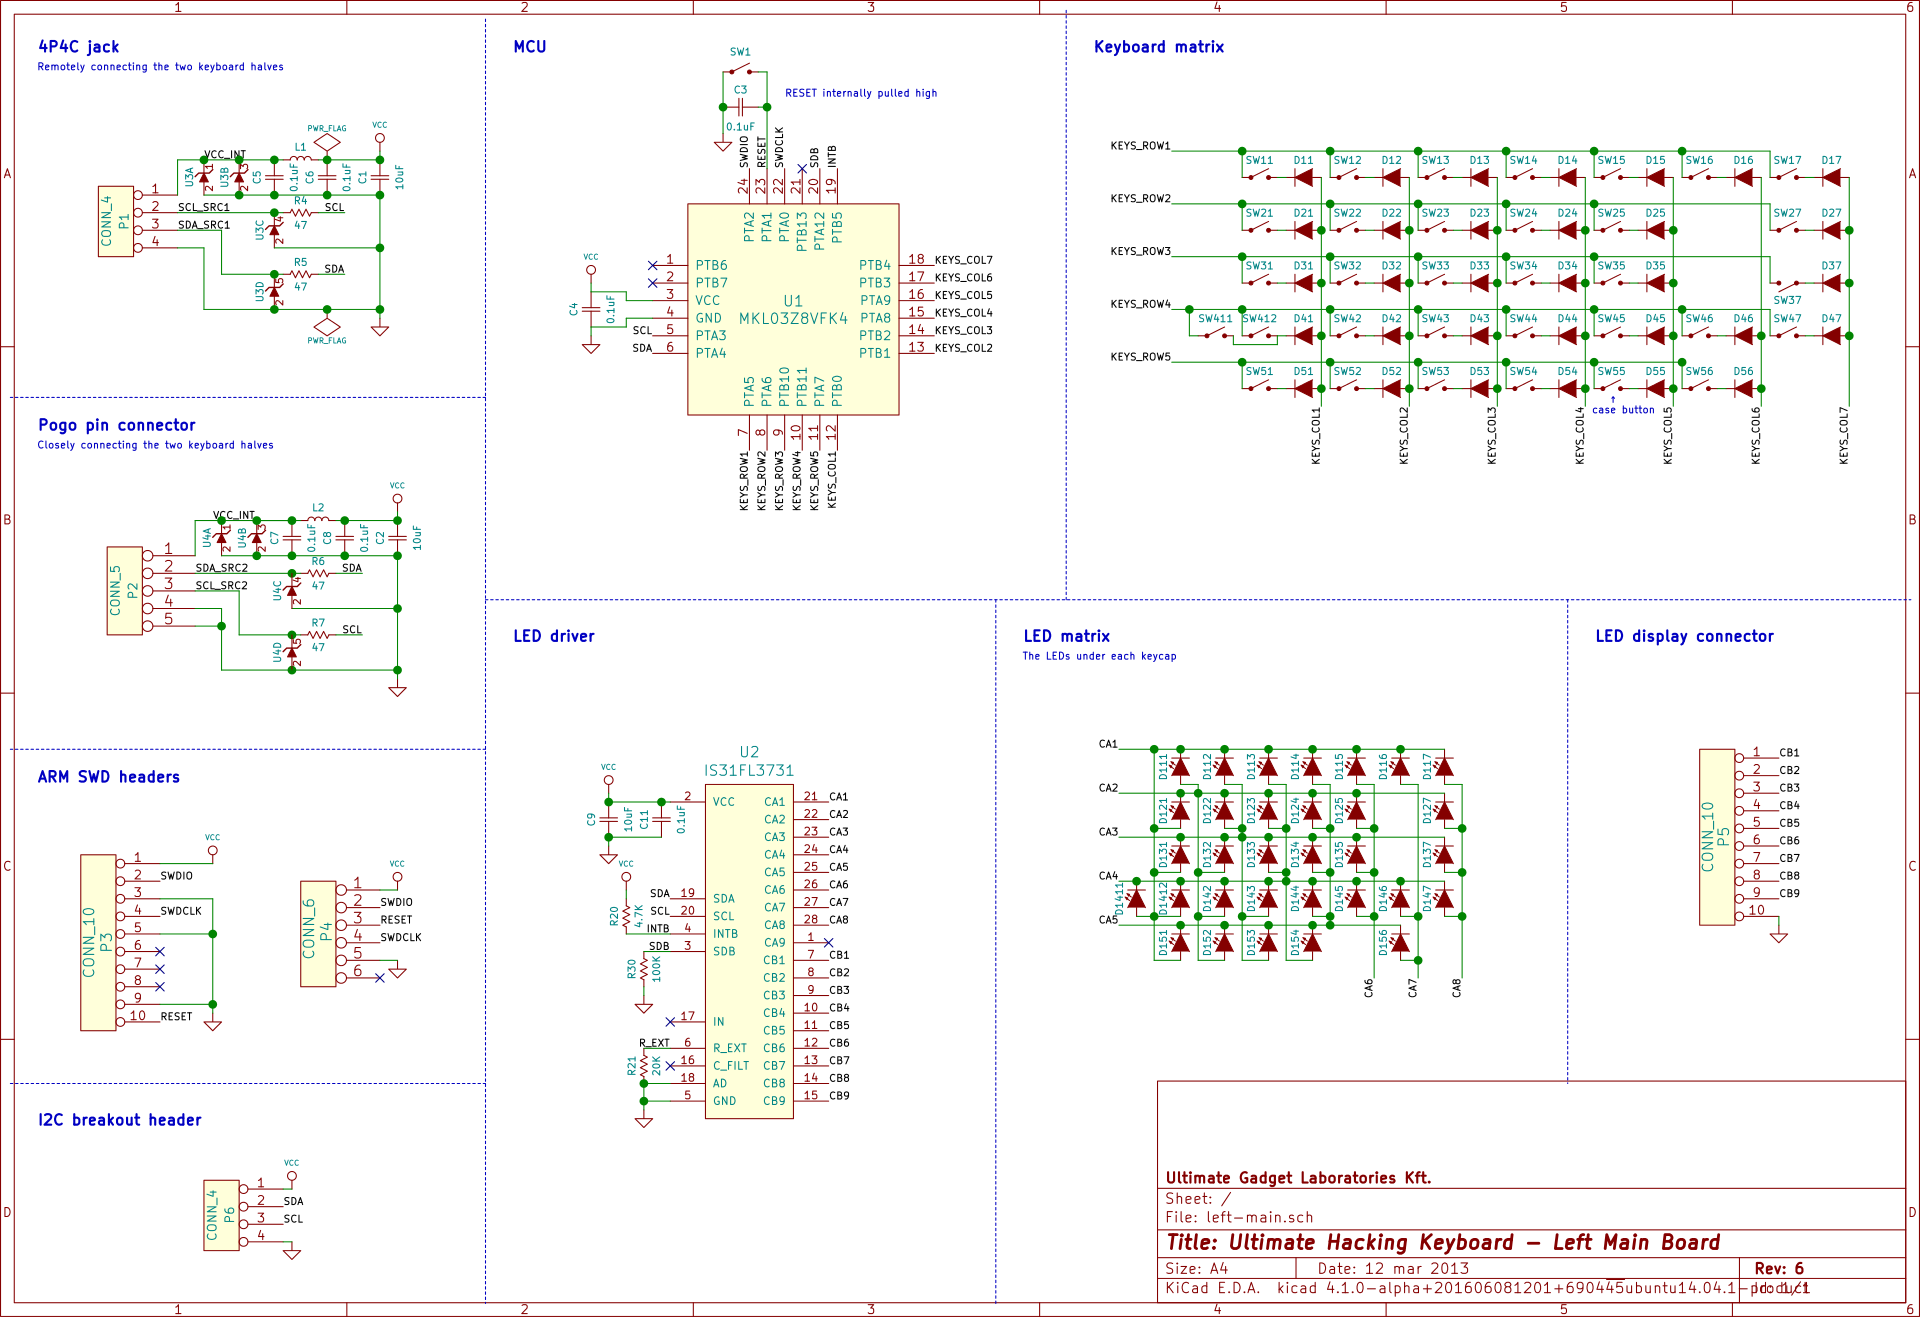 Ultimate Hacking Keyboard Tooling Is Progressing Crowd Supply Schematic Diagram Mad Props Go To The Always Awesome Mr Jan Rychter For Reviewing Catching A Couple Of Issues And Providing Valuable Suggestions